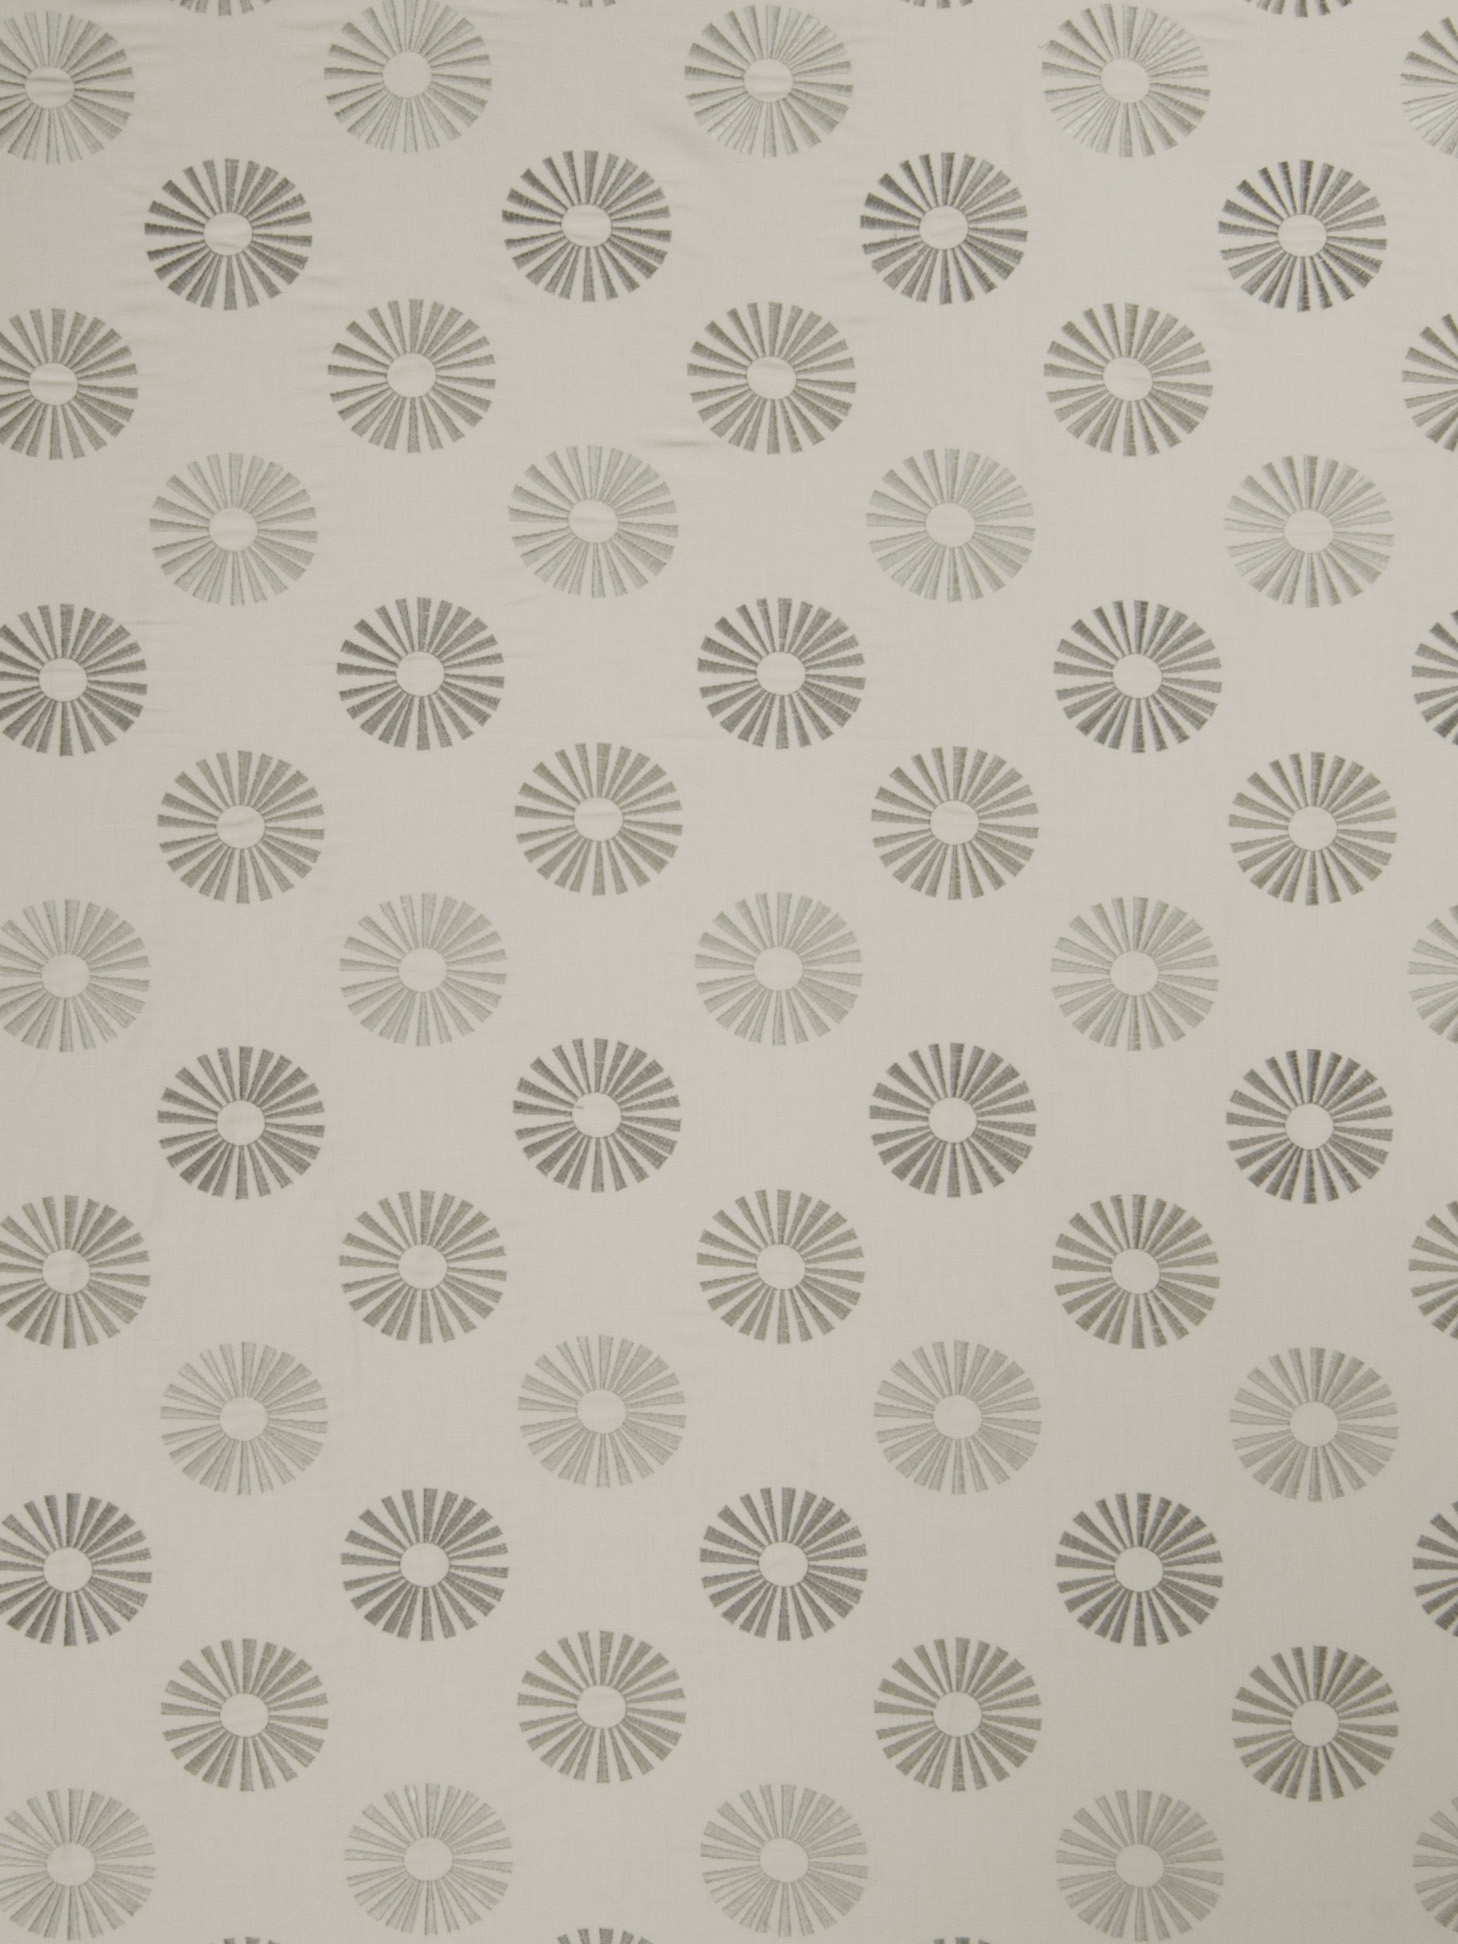 Home Decor 8x8 Fabric Swatch-Jaclyn Smith Angie Dove Gray